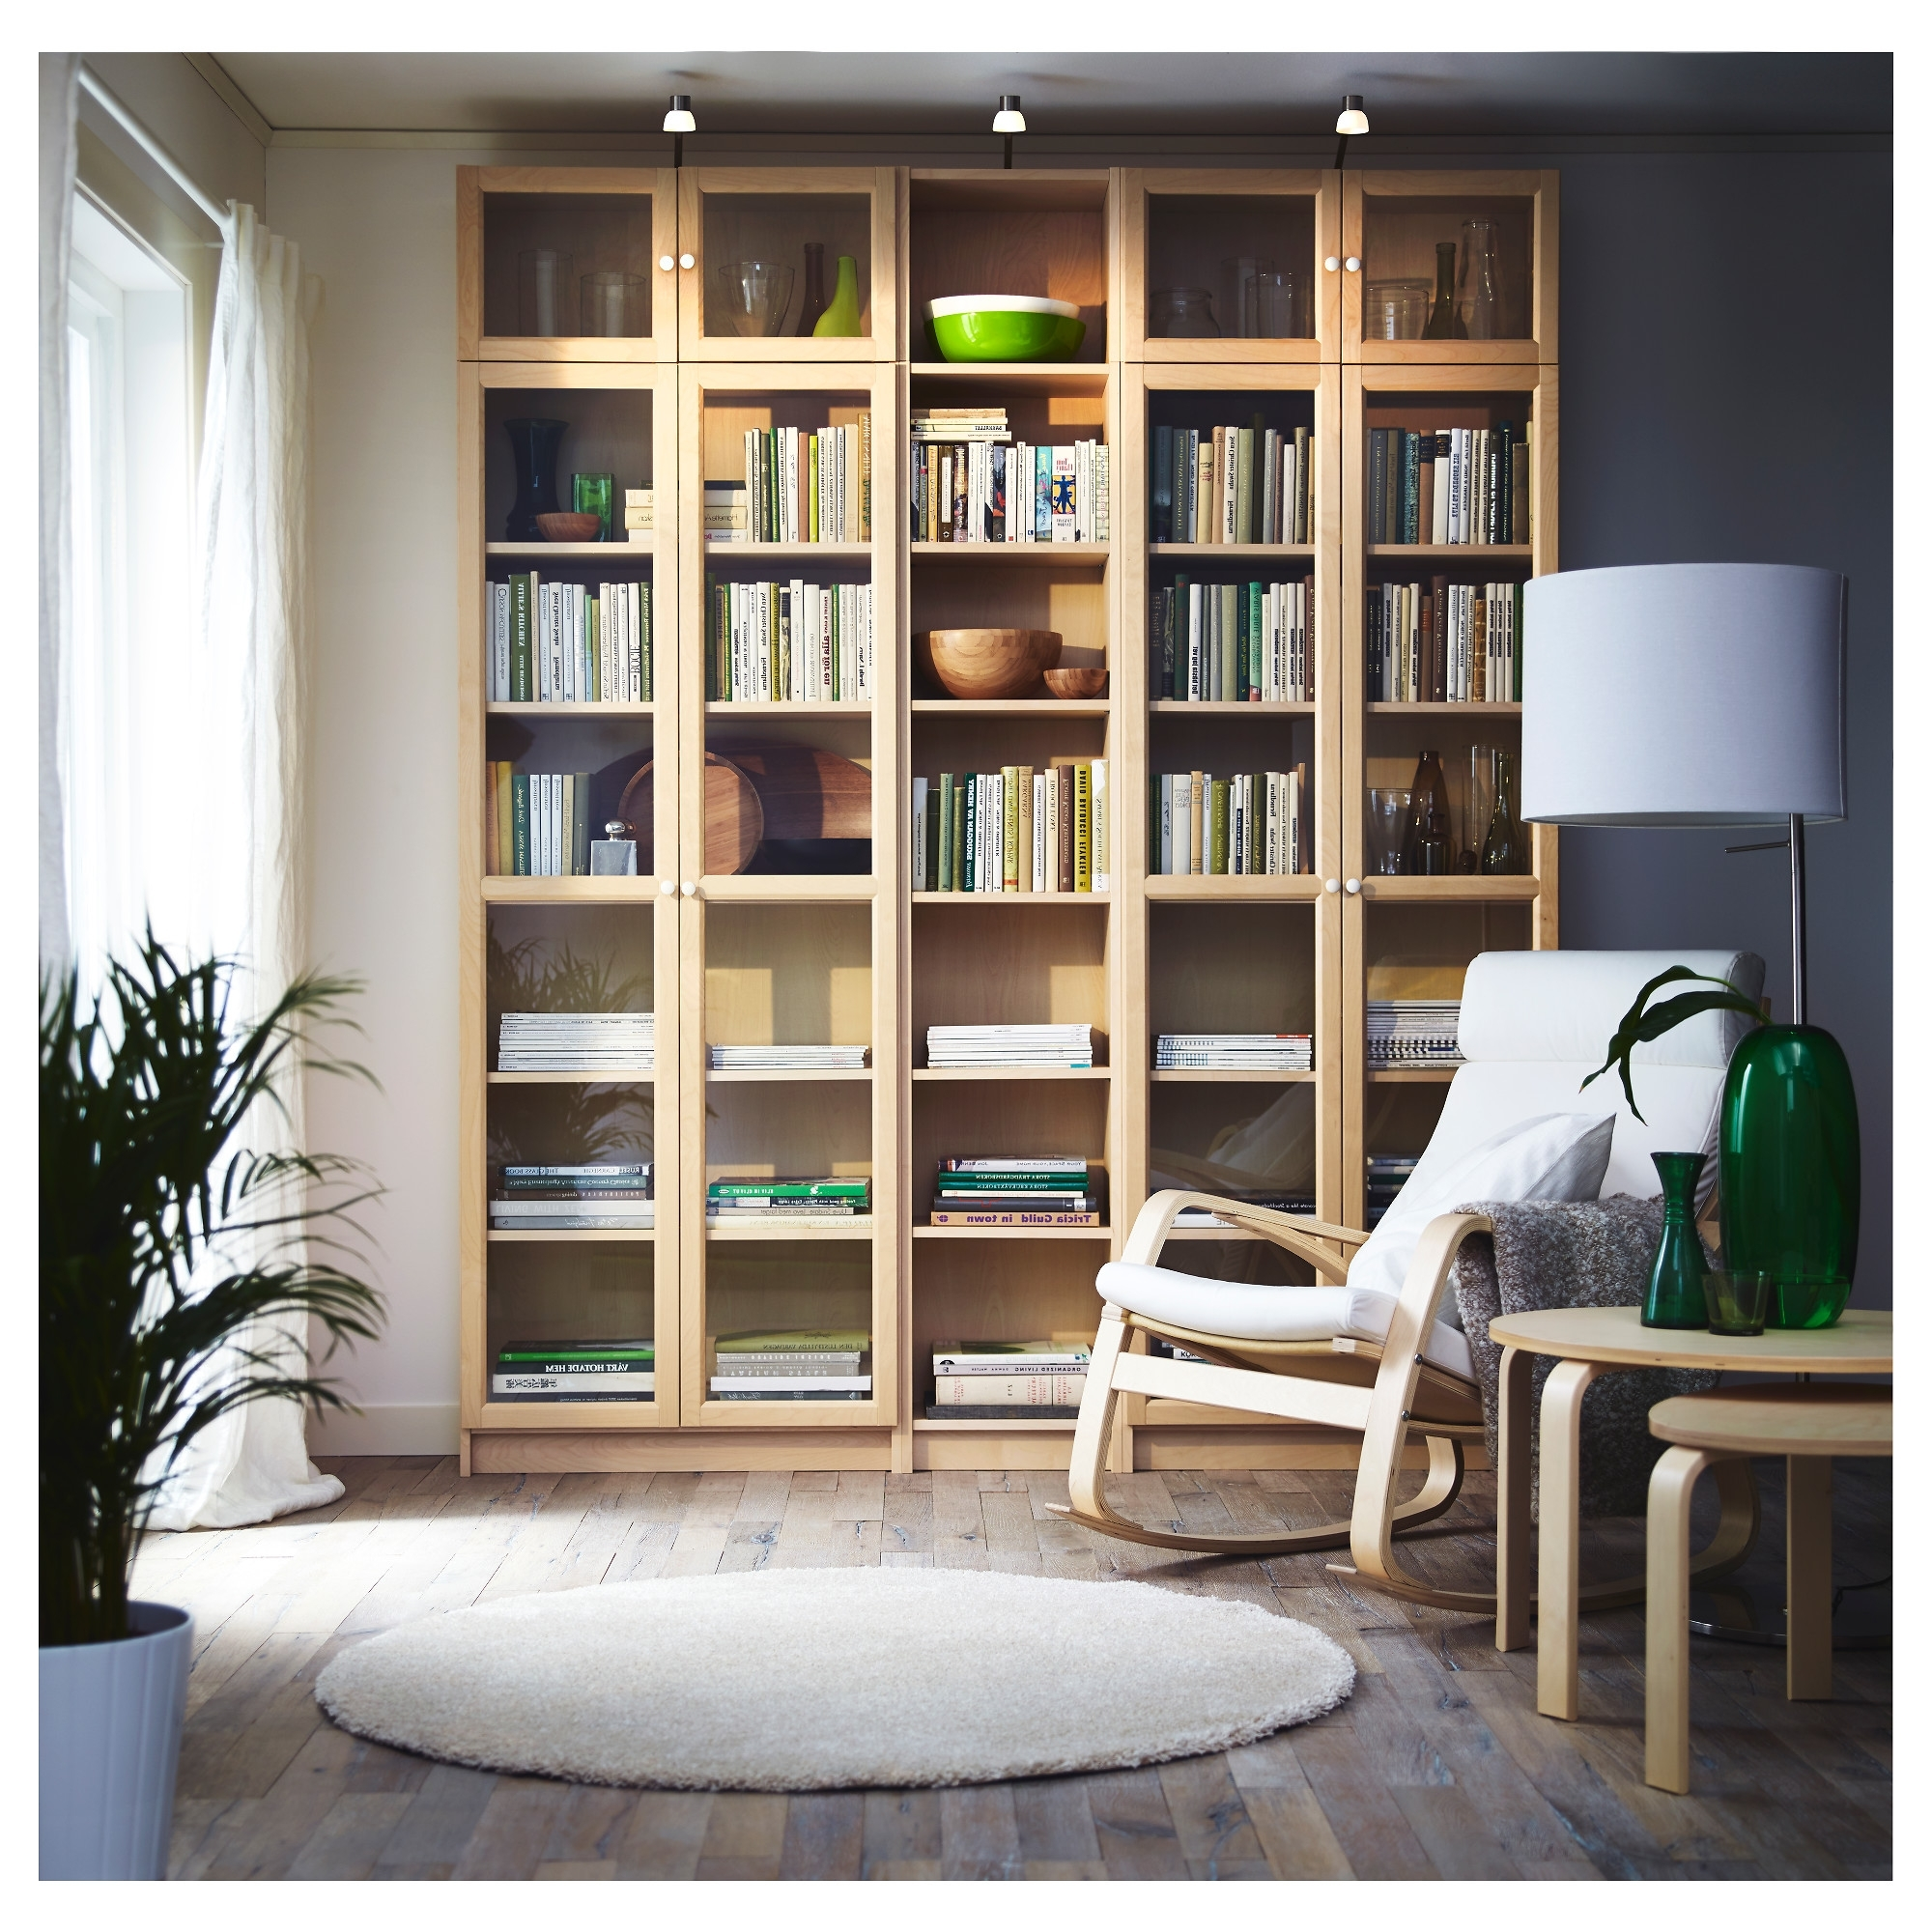 Ikea Billy Bookcases Intended For Trendy Billy / Oxberg Bookcase – Birch Veneer – Ikea (View 10 of 15)